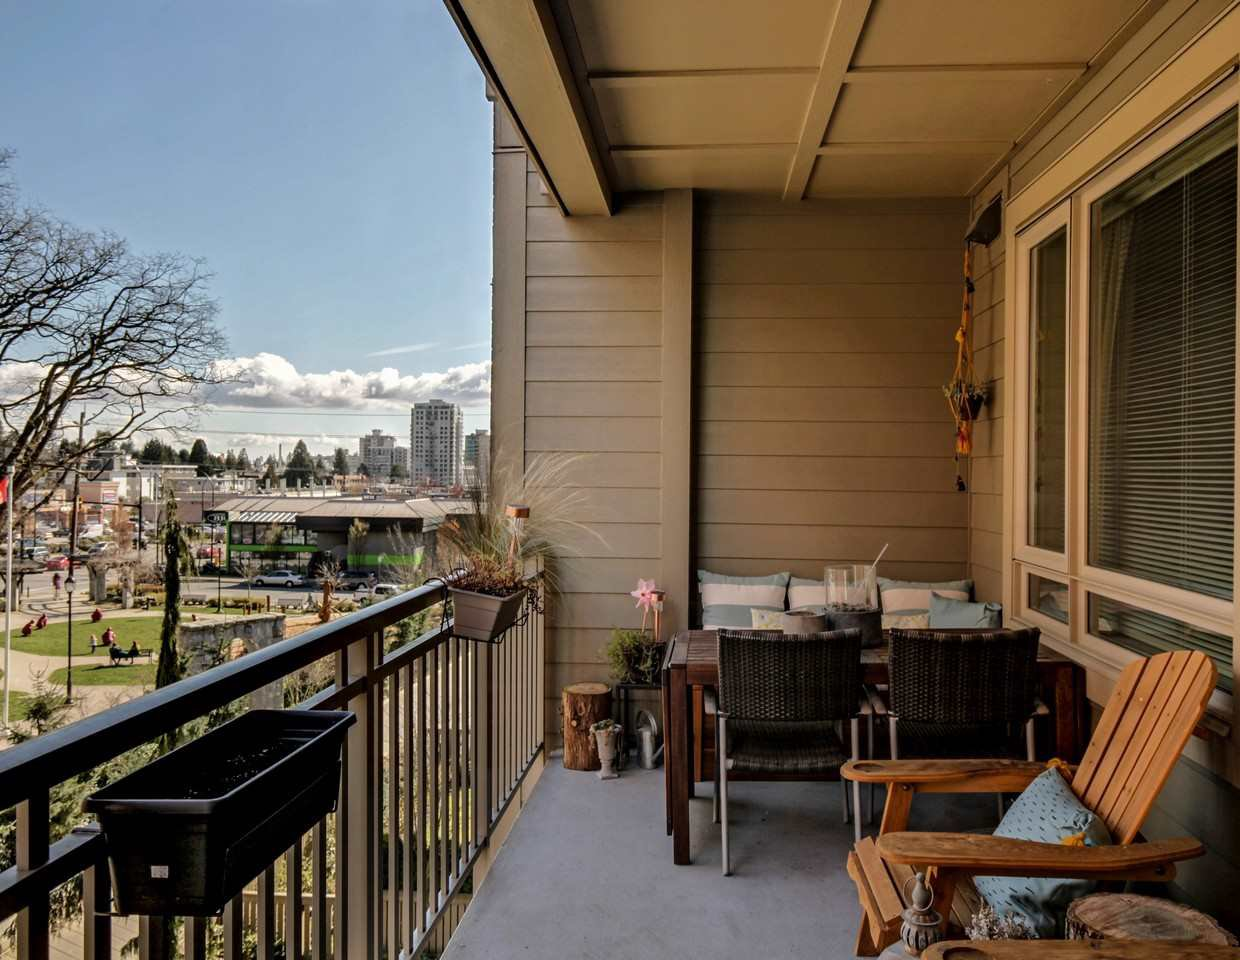 Photo 13: Photos: 319 119 W 22ND STREET in North Vancouver: Central Lonsdale Condo for sale : MLS®# R2047201